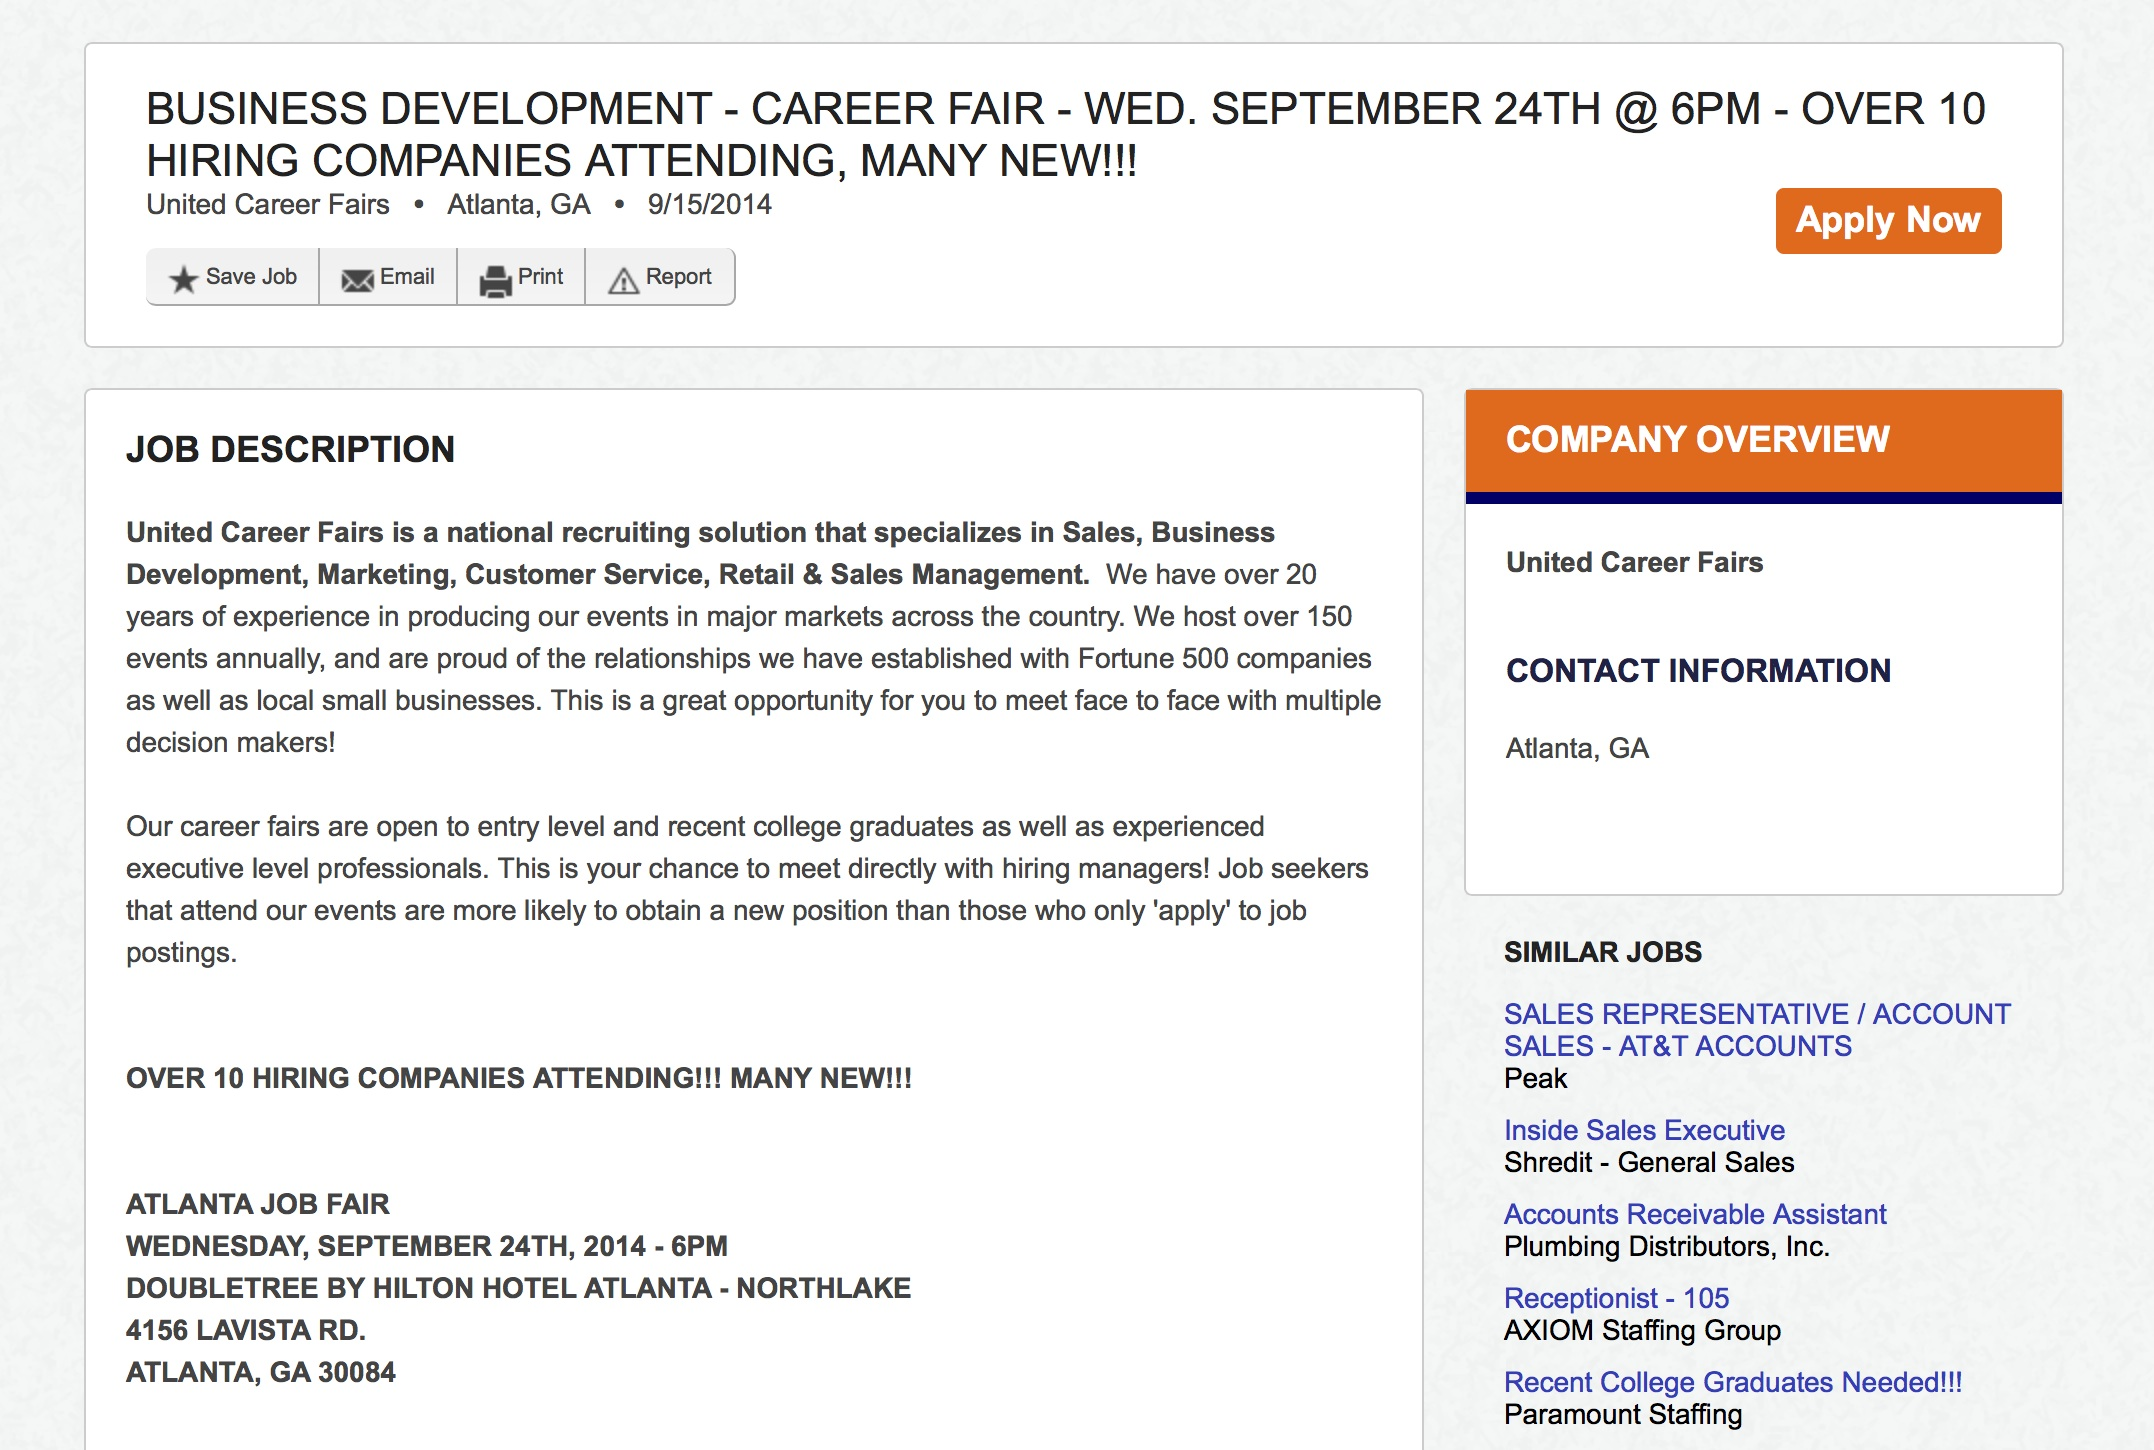 companies lure unemployed misleading claims strategic united career fair is offering the same solicitation on careerbuilder com for a similarly vague